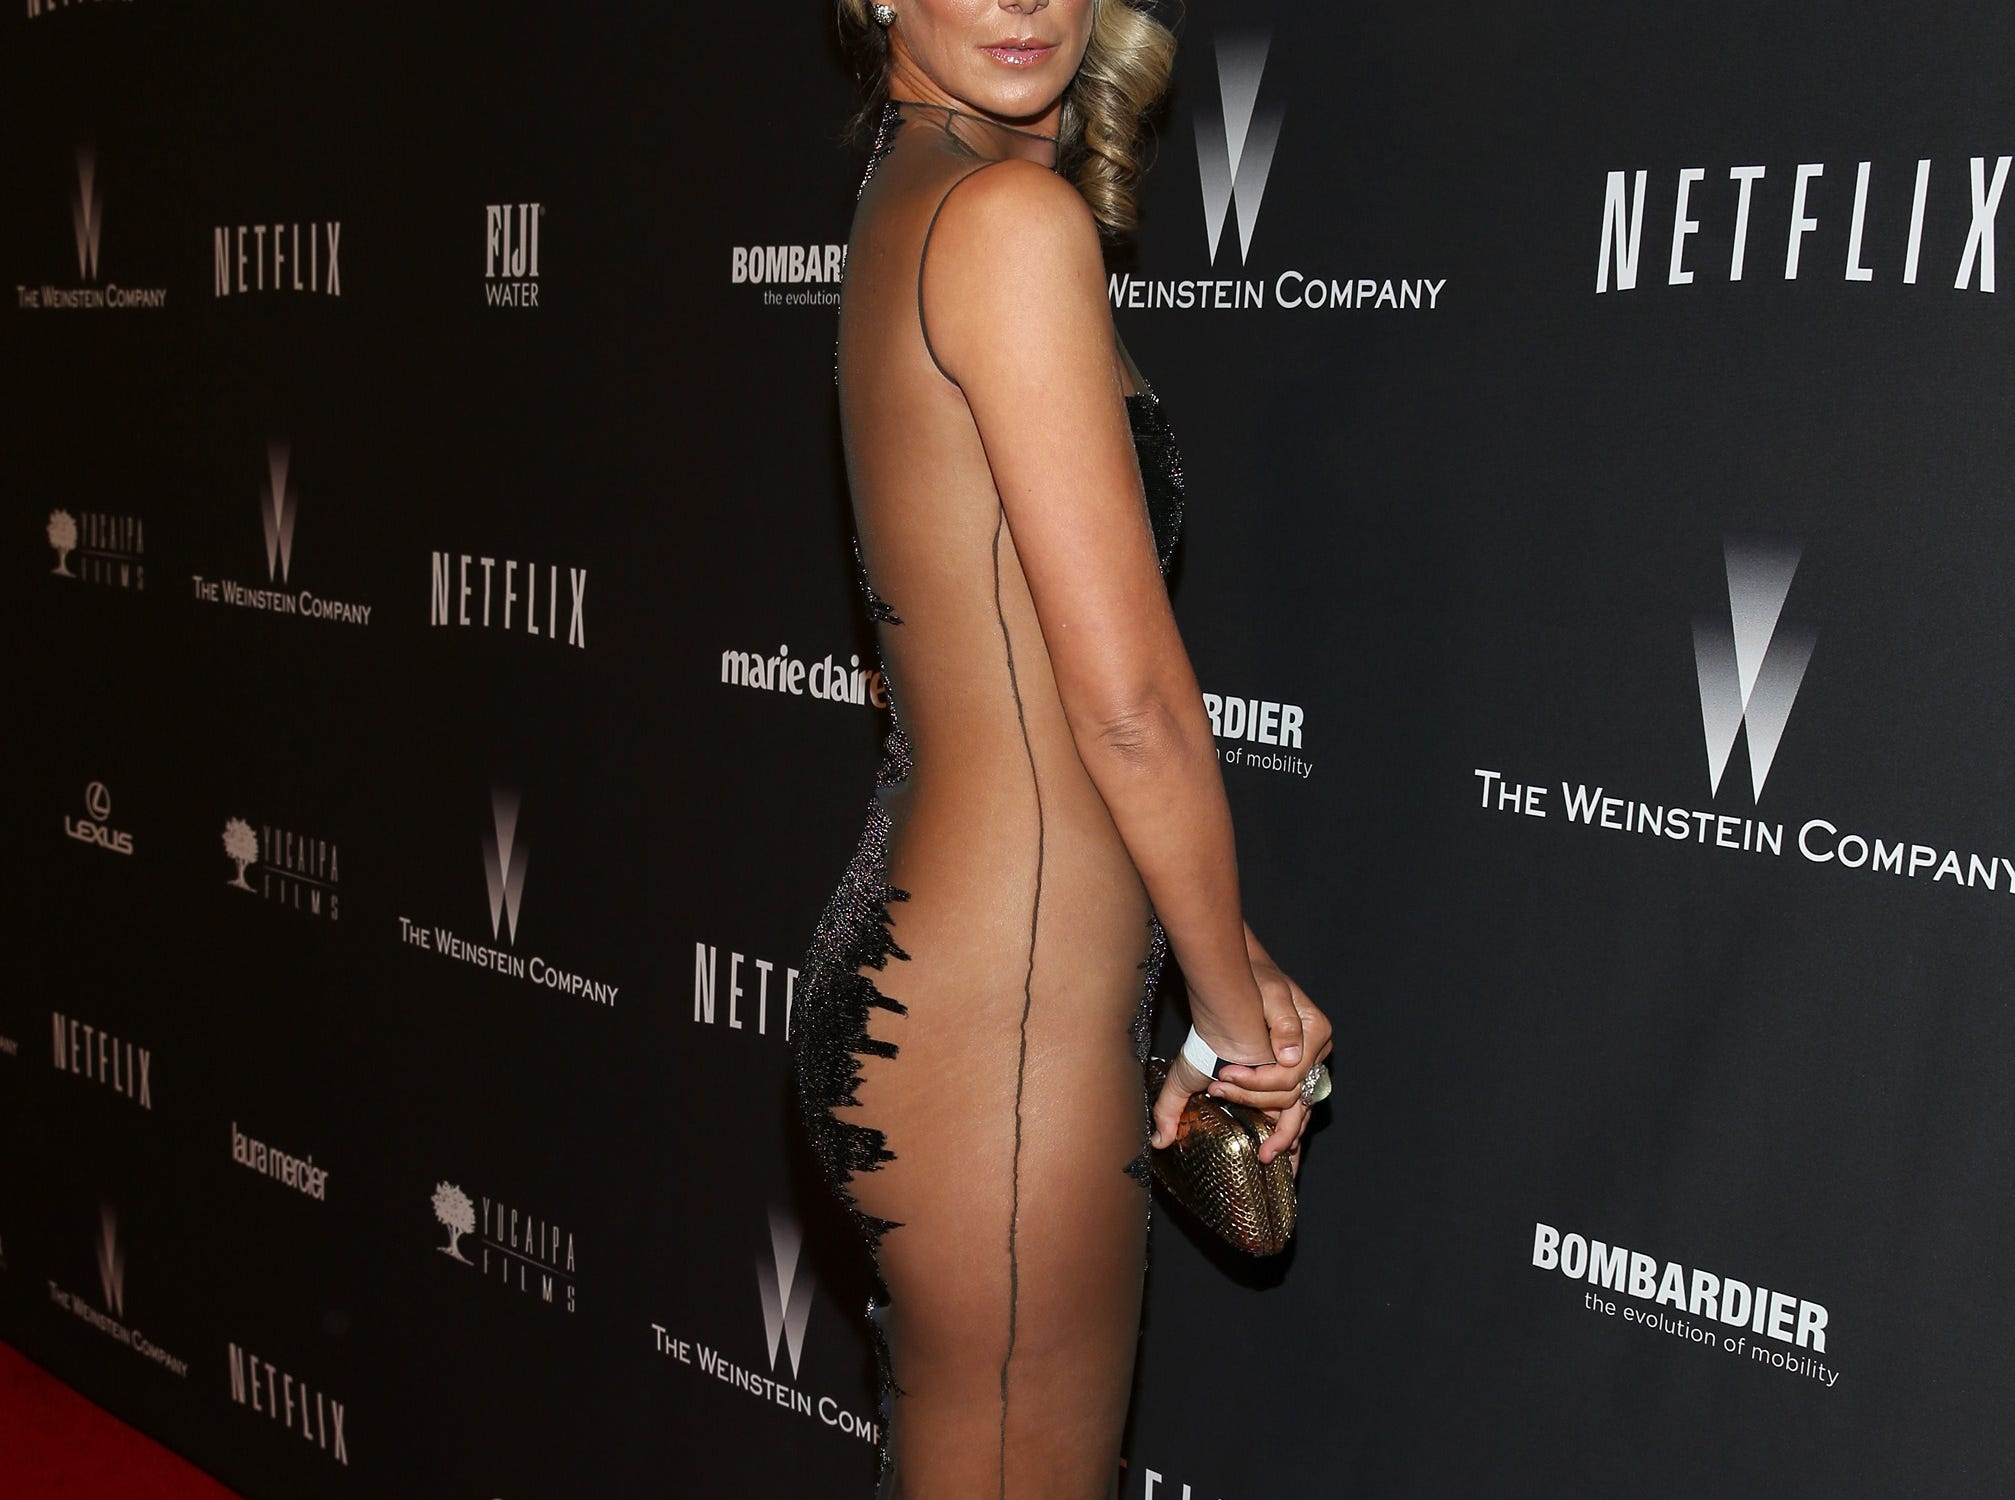 BEVERLY HILLS, CA - JANUARY 12: Model Lady Victoria Hervey attends The Weinstein Company & Netflix's 2014 Golden Globes After Party presented by Bombardier, FIJI Water, Lexus, Laura Mercier, Marie Claire and Yucaipa Films at The Beverly Hilton Hotel on January 12, 2014 in Beverly Hills, California.  (Photo by Imeh Akpanudosen/Getty Images for The Weinstein Company) ORG XMIT: 455277673 ORIG FILE ID: 462234589